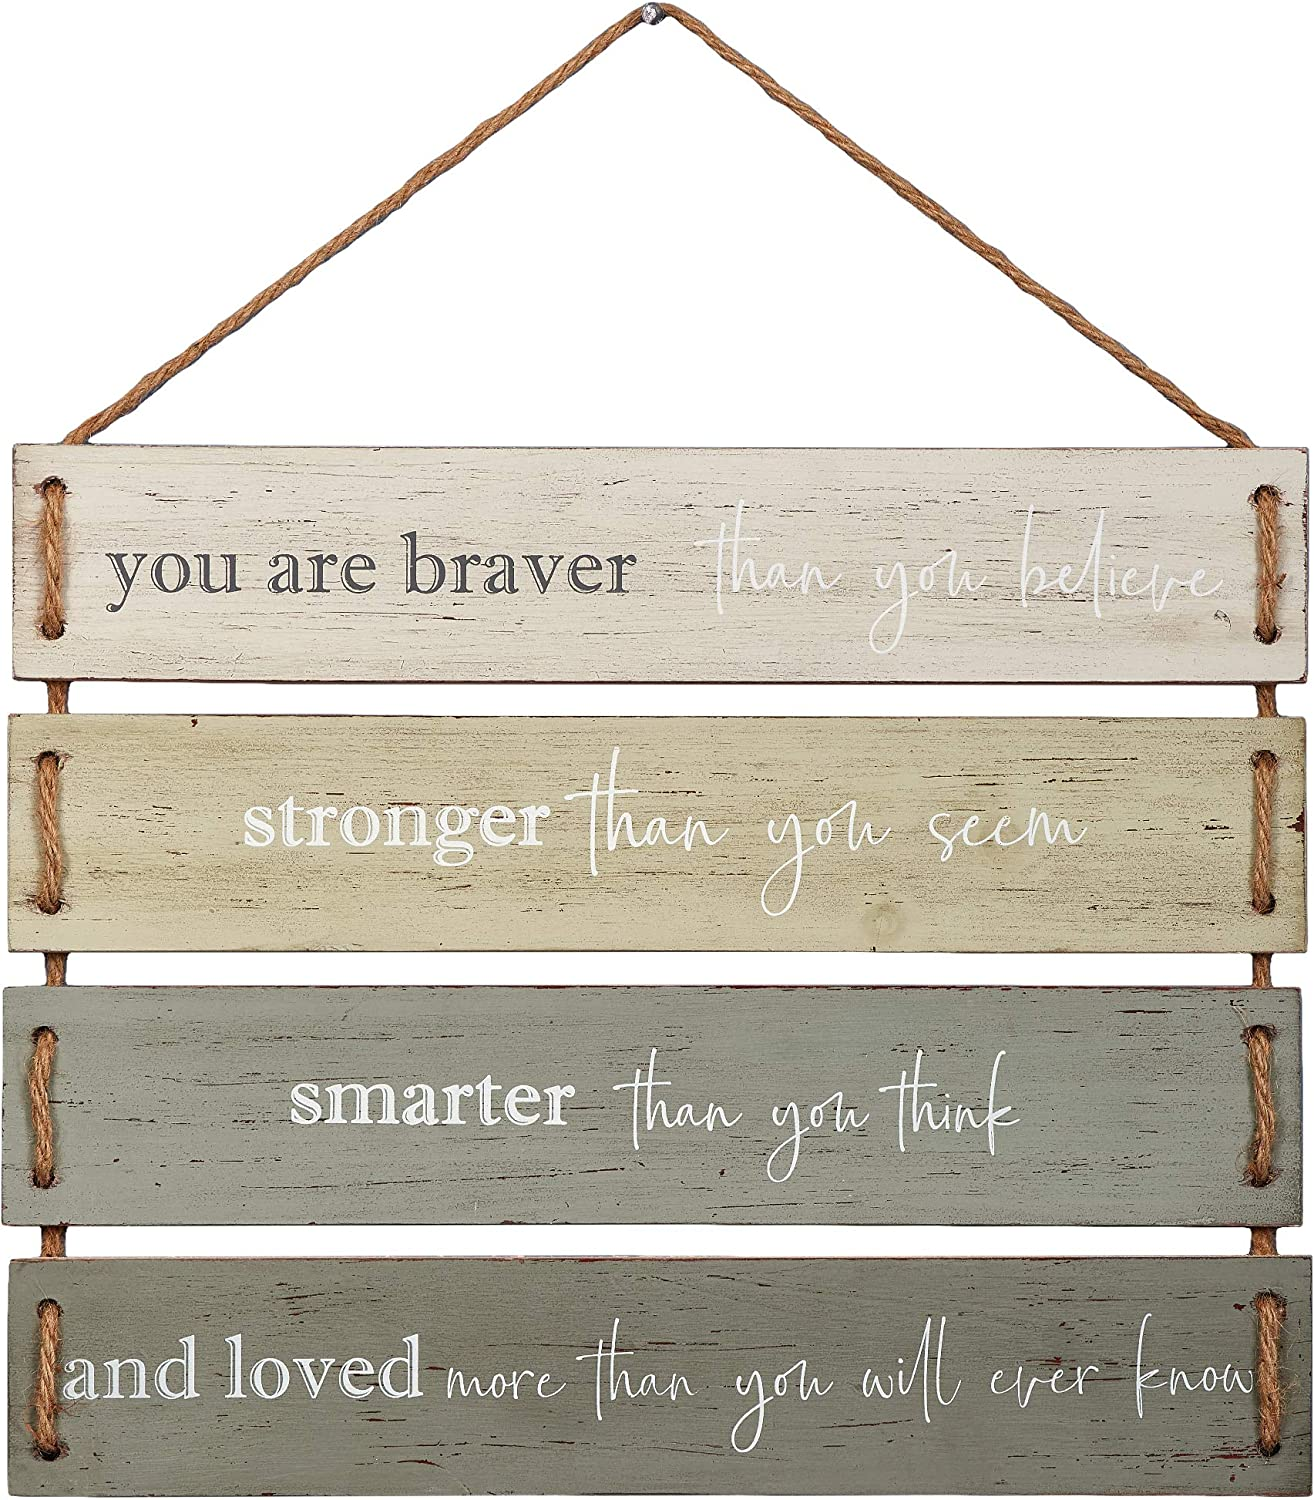 """Barnyard Designs You are Braver Than You Believe, Stronger Than You Seem Quote Wall Decor, Decorative Wood Plank Hanging Sign 17"""" x 14"""